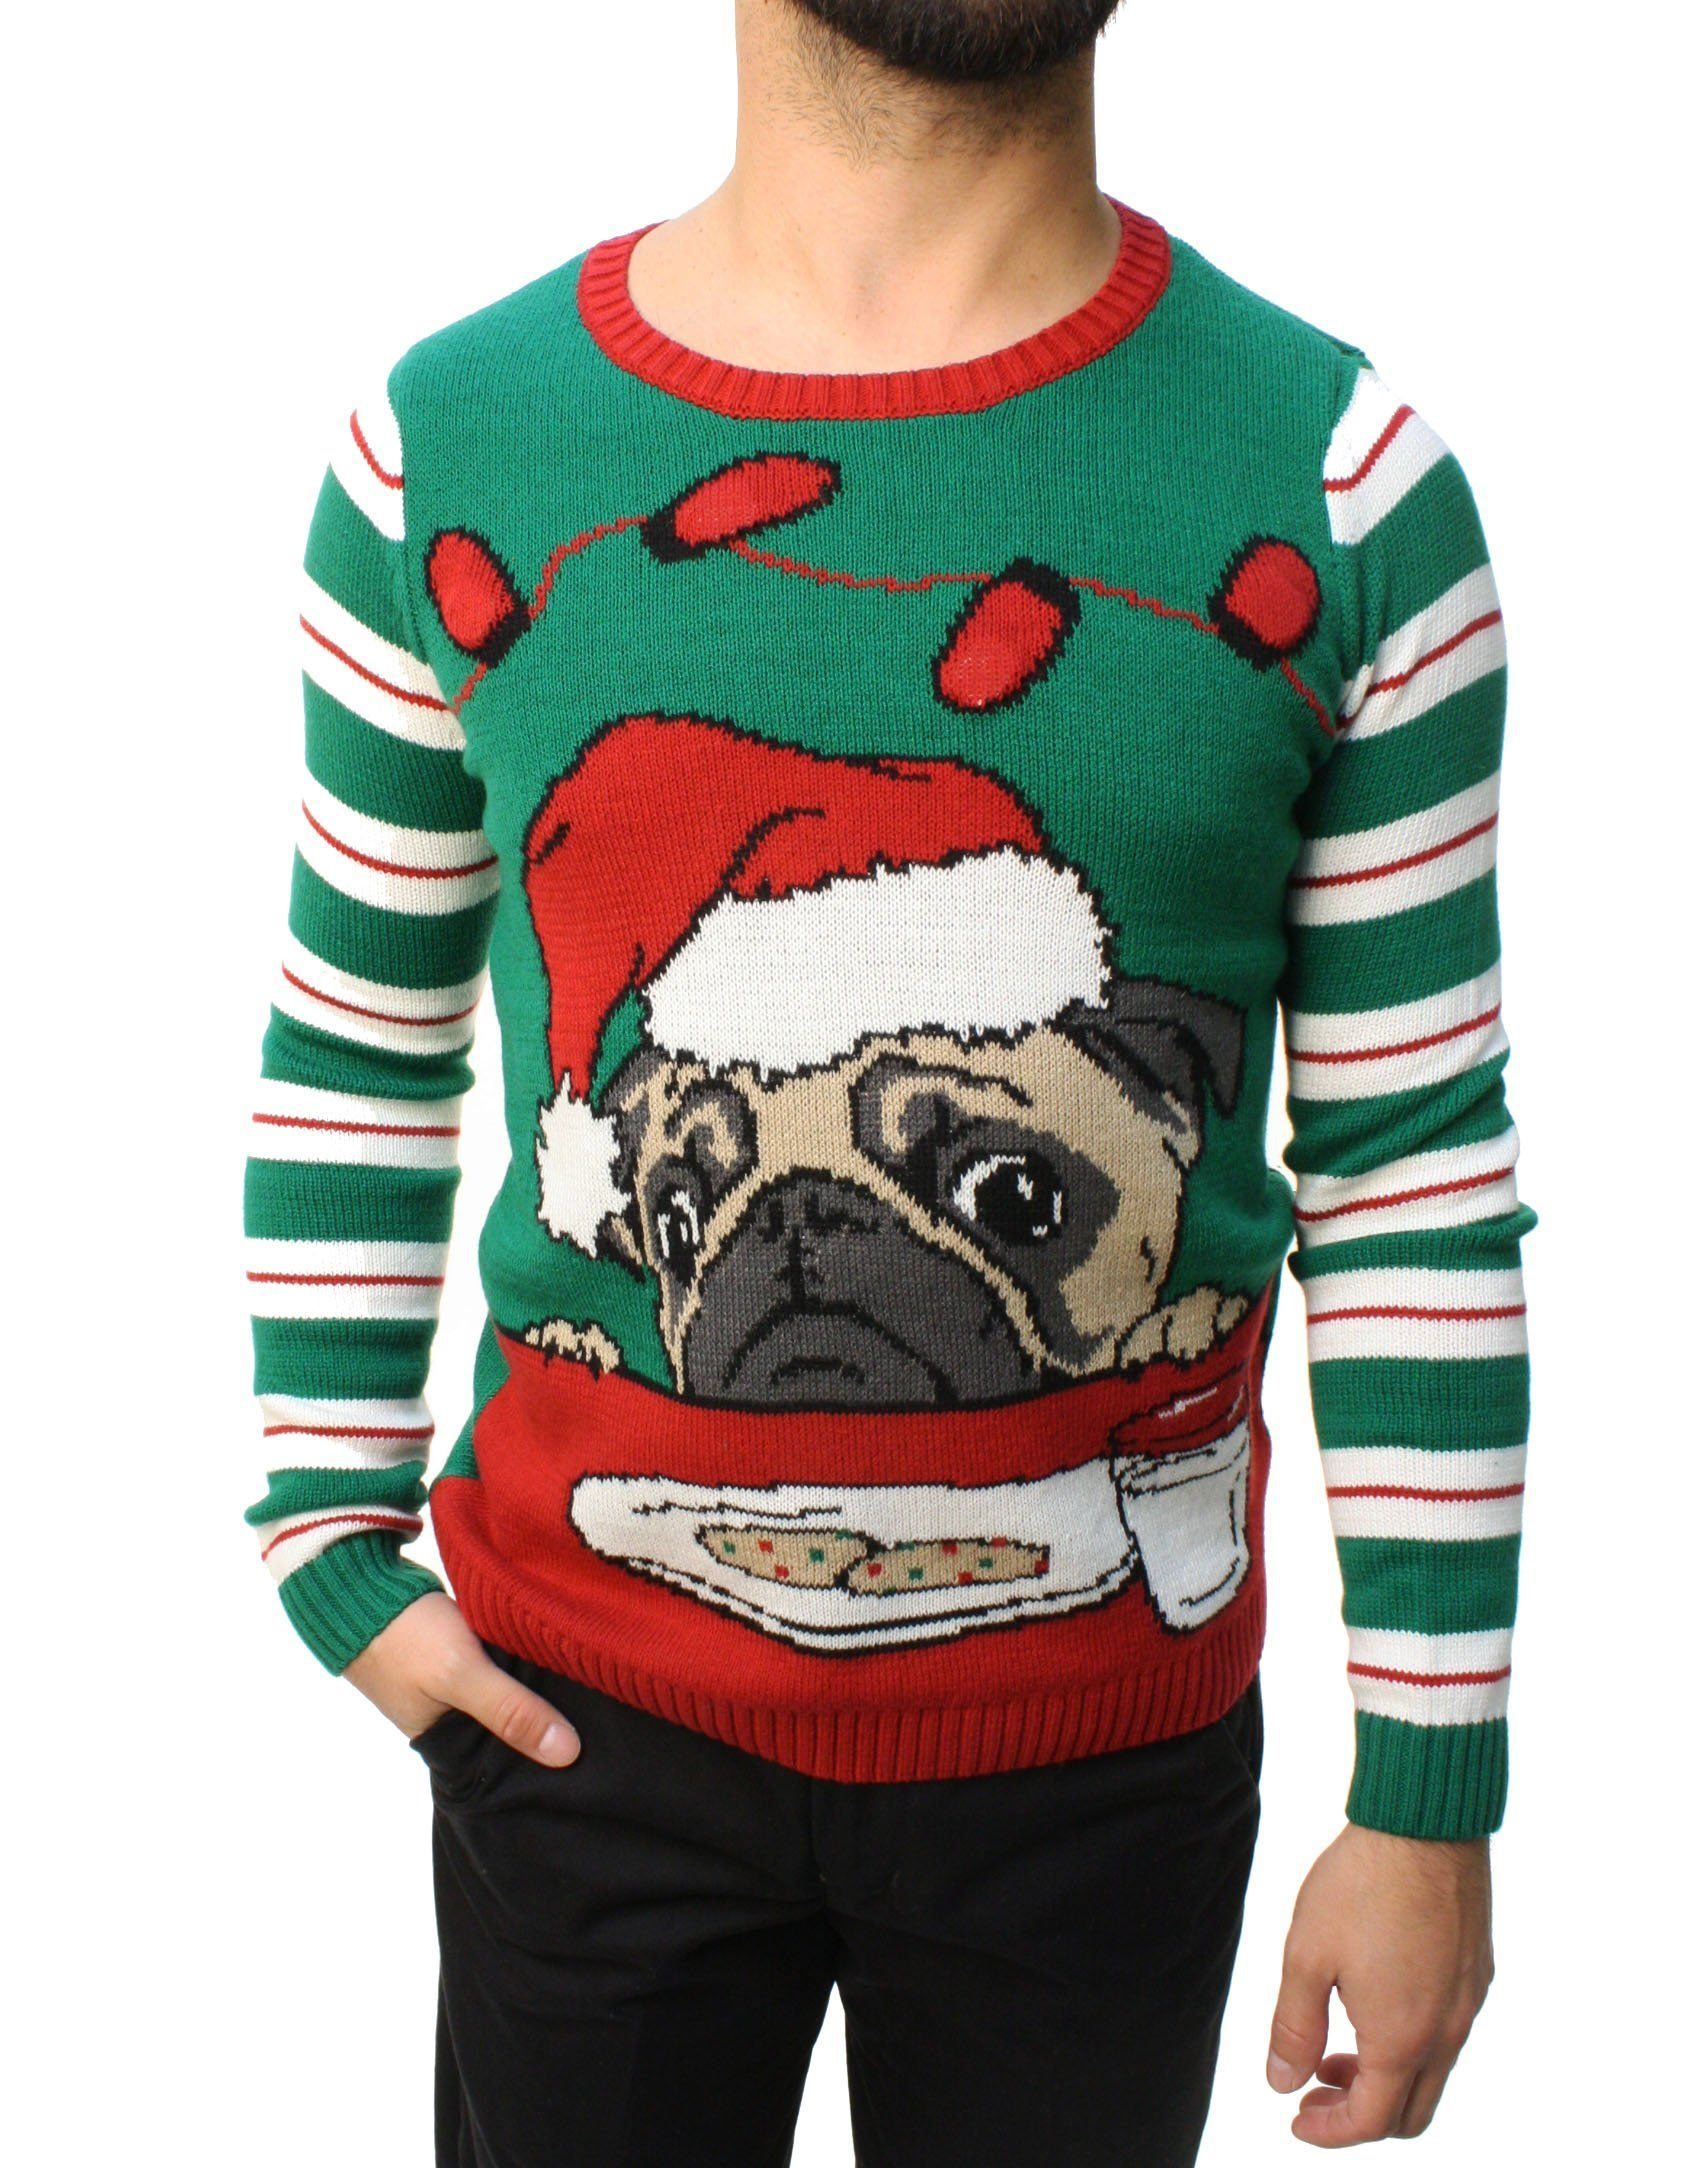 Ugly Christmas Sweater Led Pug With Cookies Sweater Nordstrom Rack ...